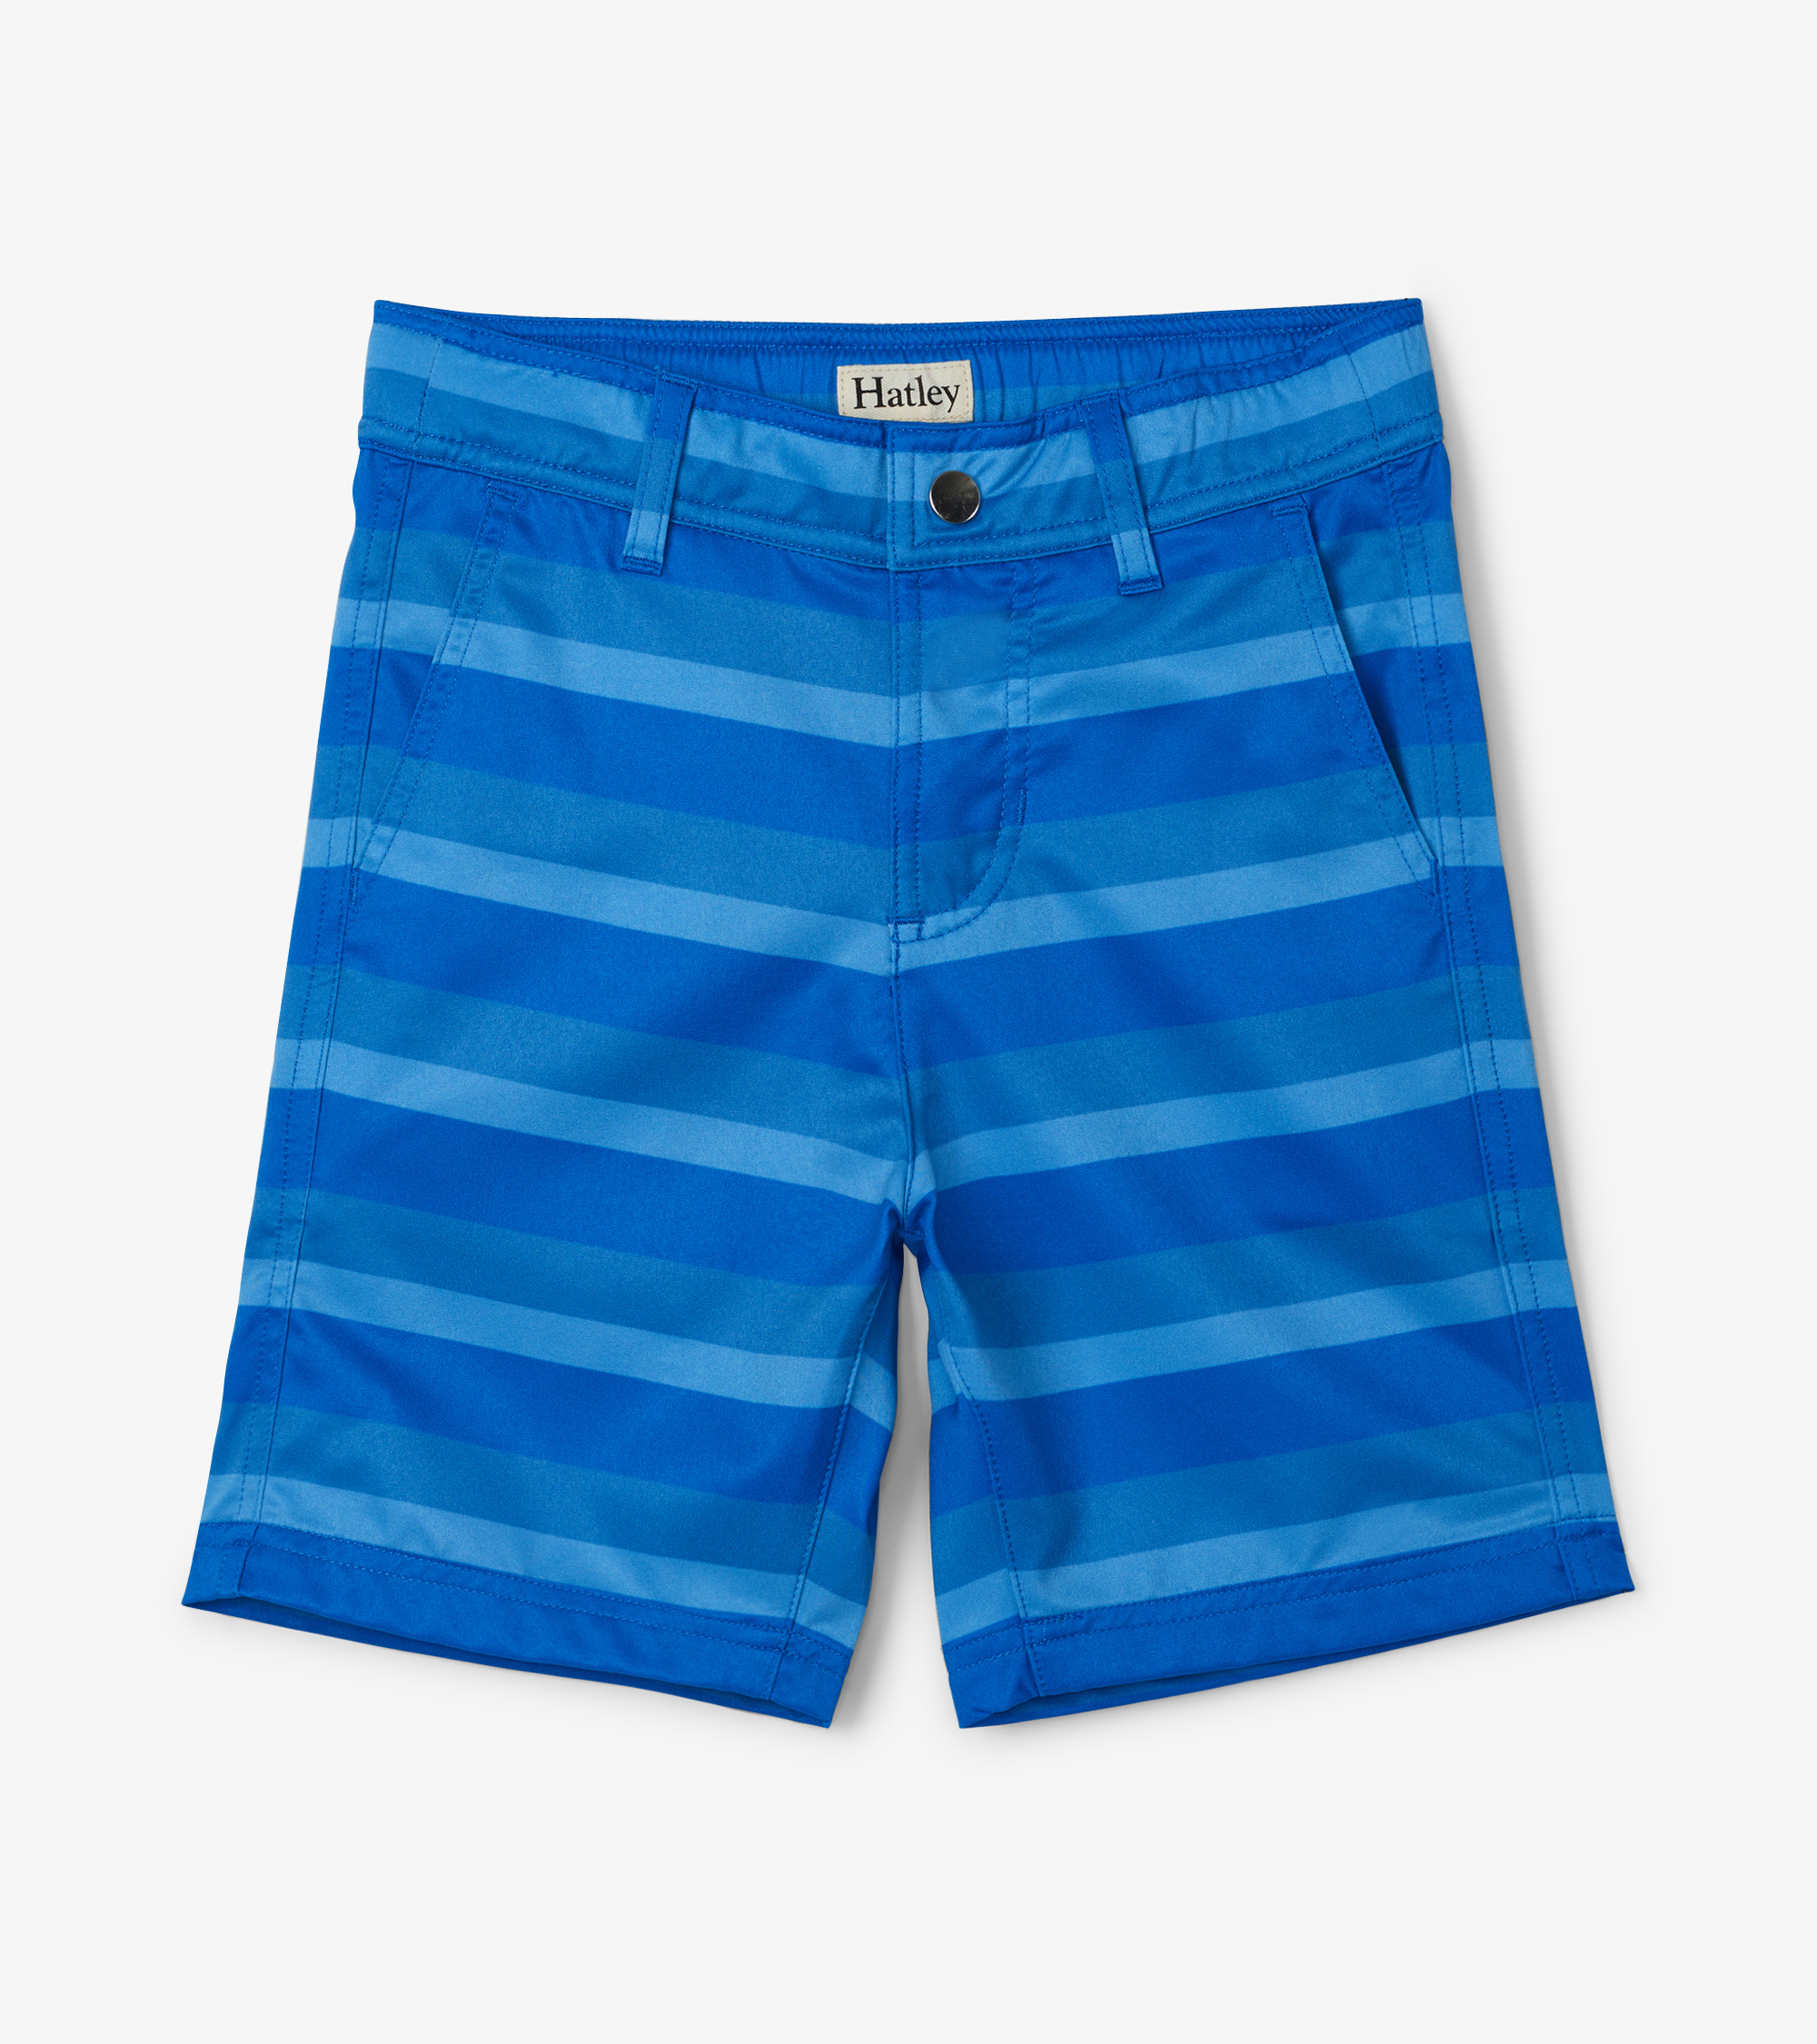 NOW £20 Hatley Stripe Quick Dry Shorts Blue